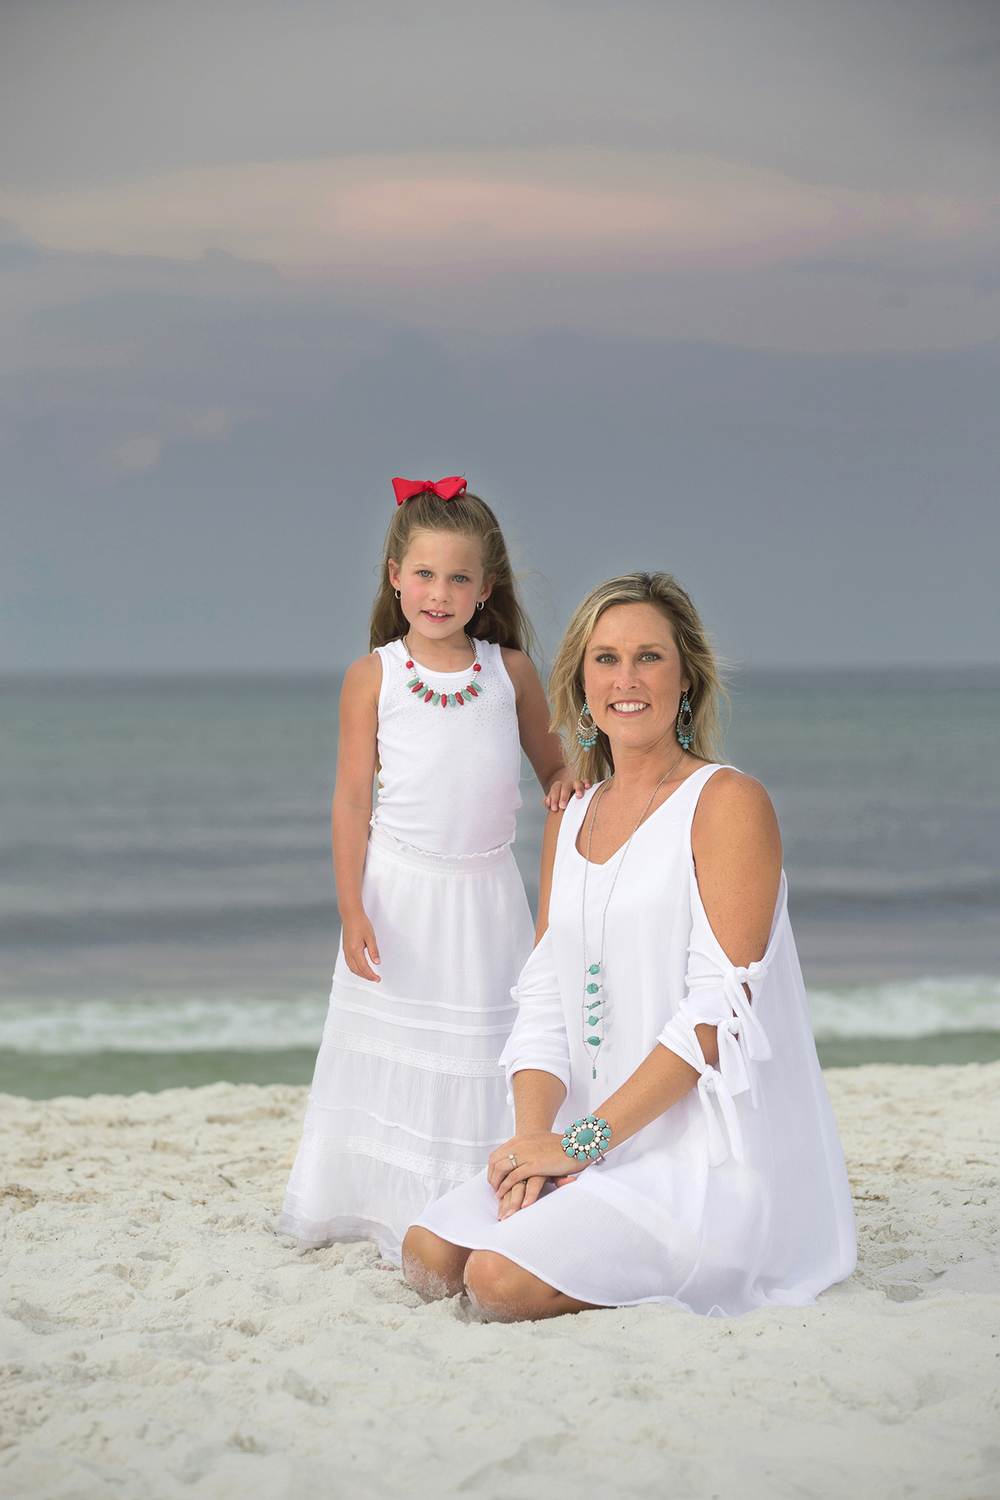 Beach Family Portrait Photographer Delray Beach, Florida